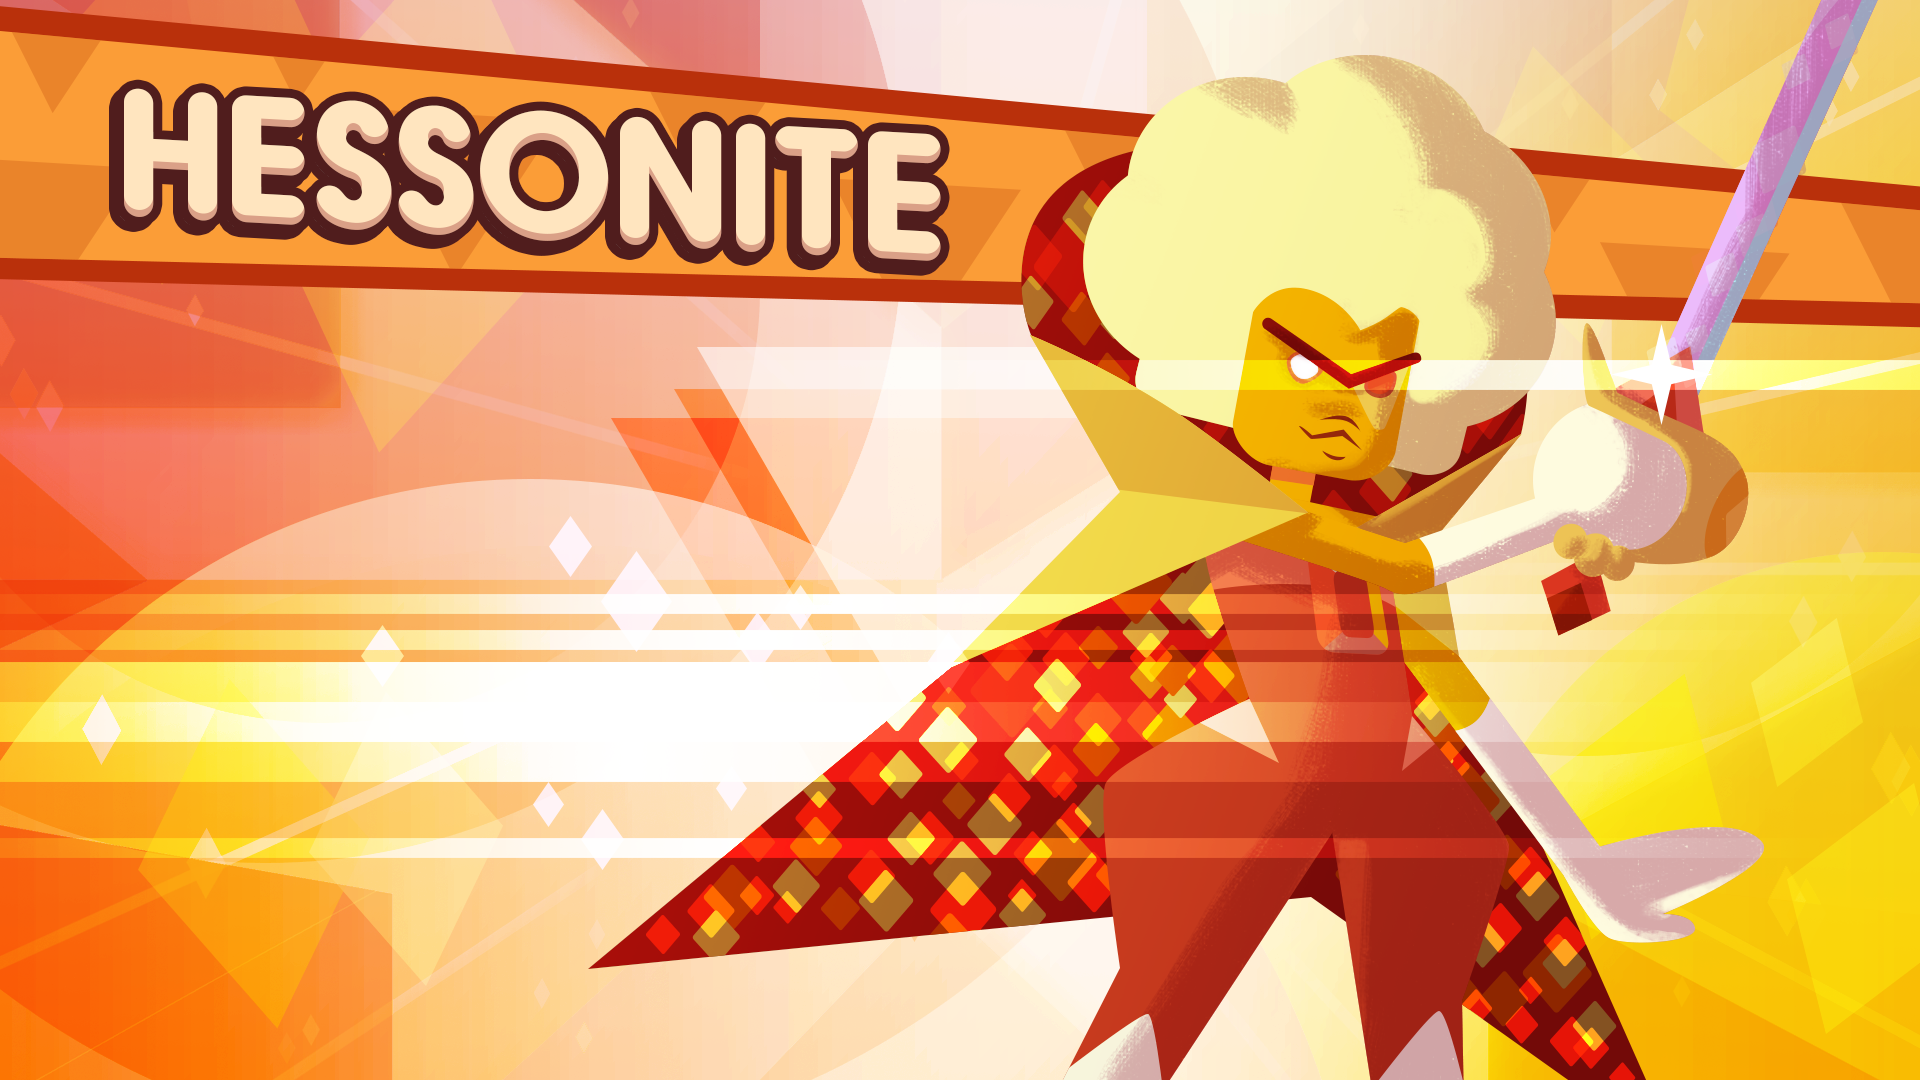 Hessonite and the Prism